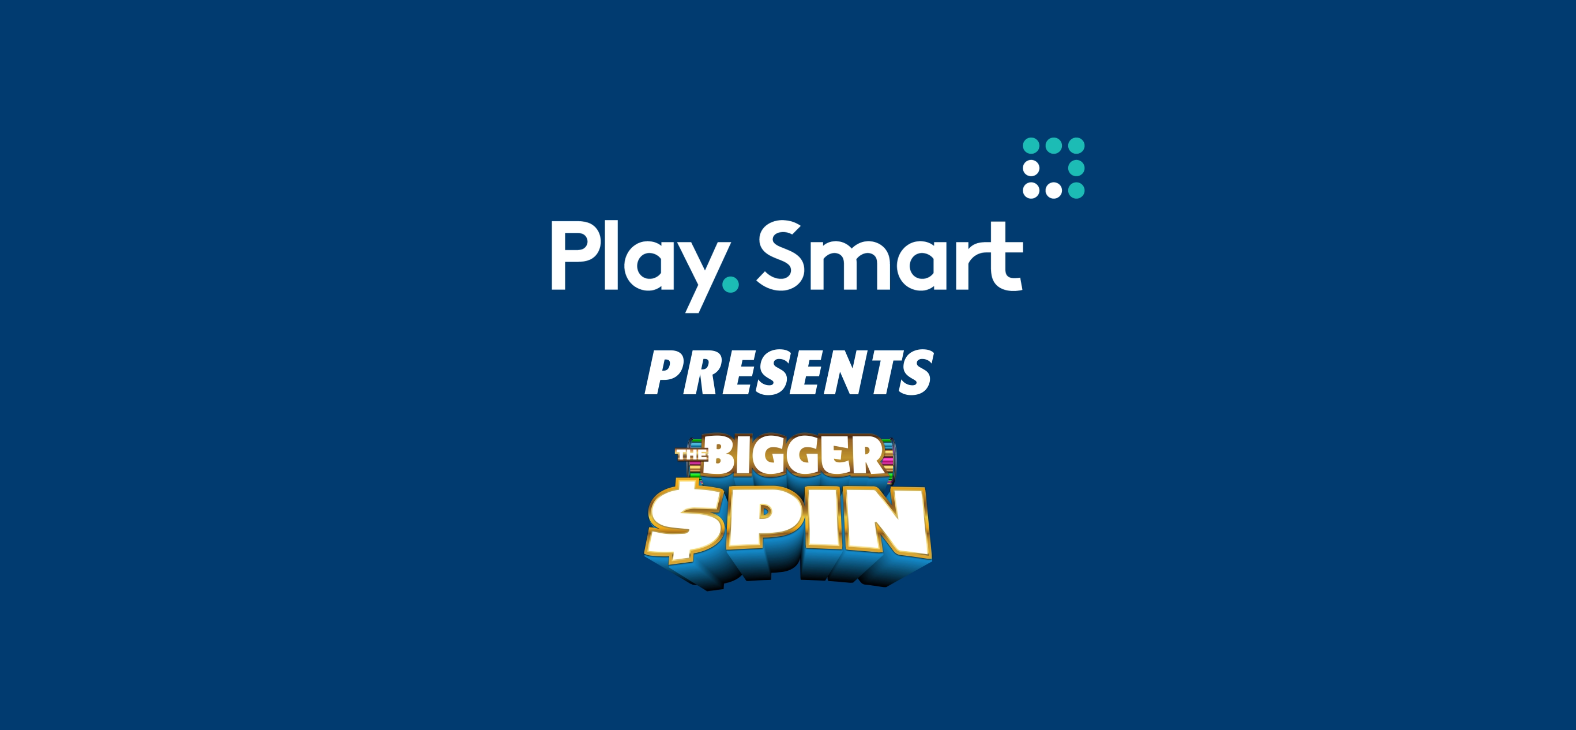 PlaySmart presents THE BIGGER $PIN